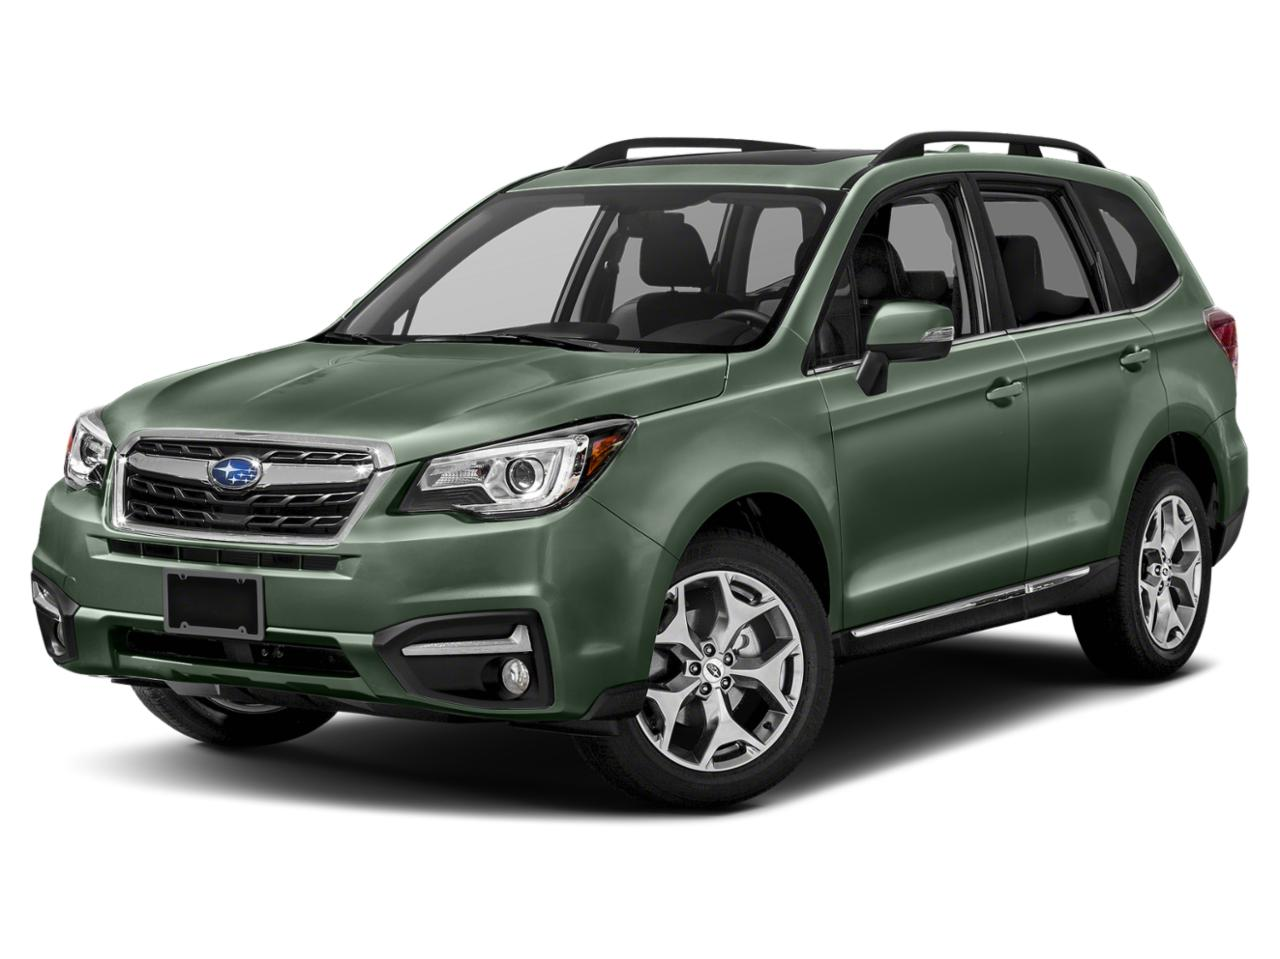 2018 Subaru Forester Vehicle Photo in Cape May Court House, NJ 08210